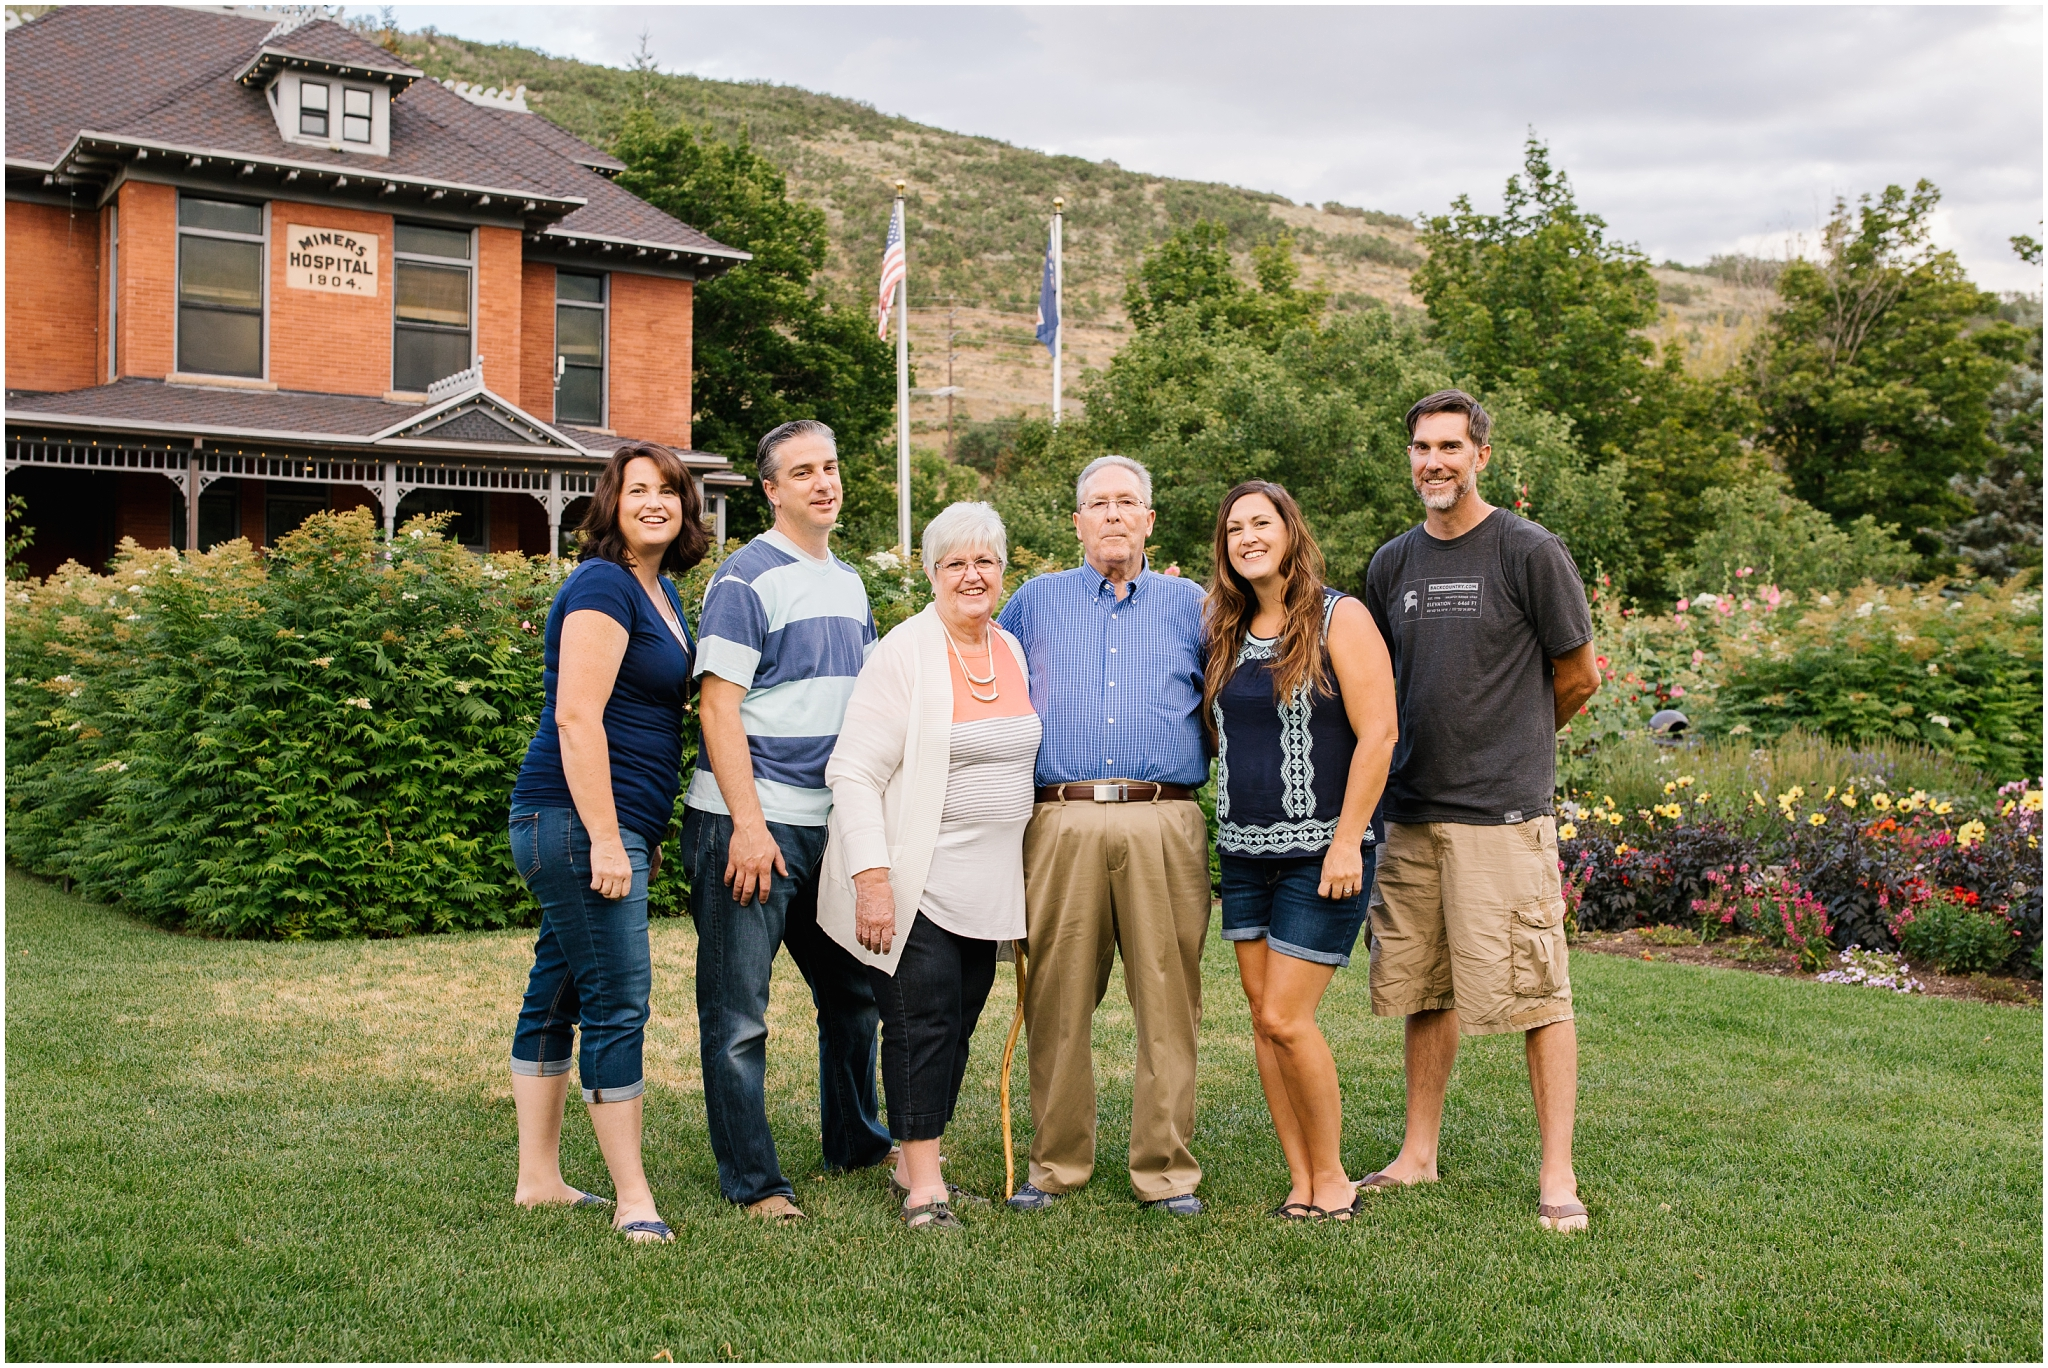 Kimball-45_Lizzie-B-Imagery-Utah-Family-Photographer-Salt-Lake-City-Park-City-Miners-Hospital-Community-Center.jpg